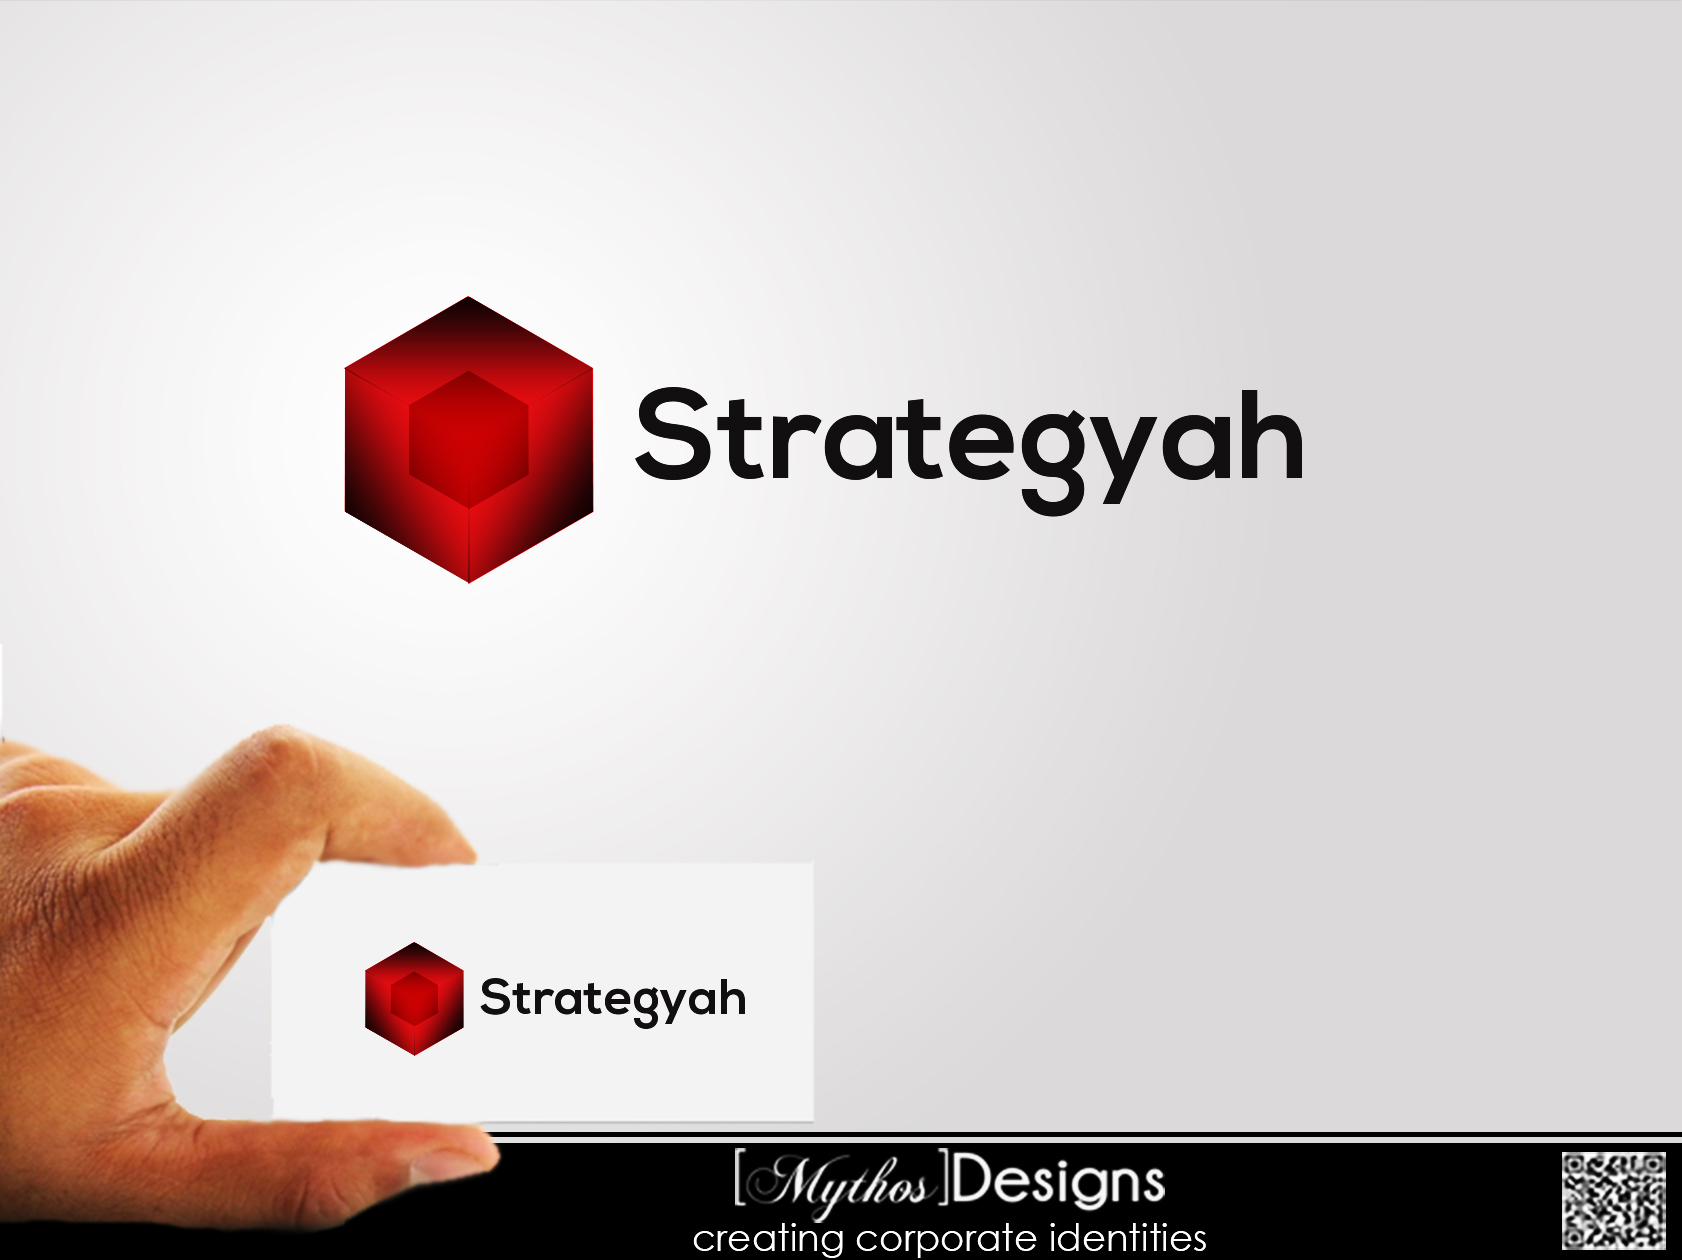 Logo Design by Mythos Designs - Entry No. 9 in the Logo Design Contest Creative Logo Design for Strategyah.